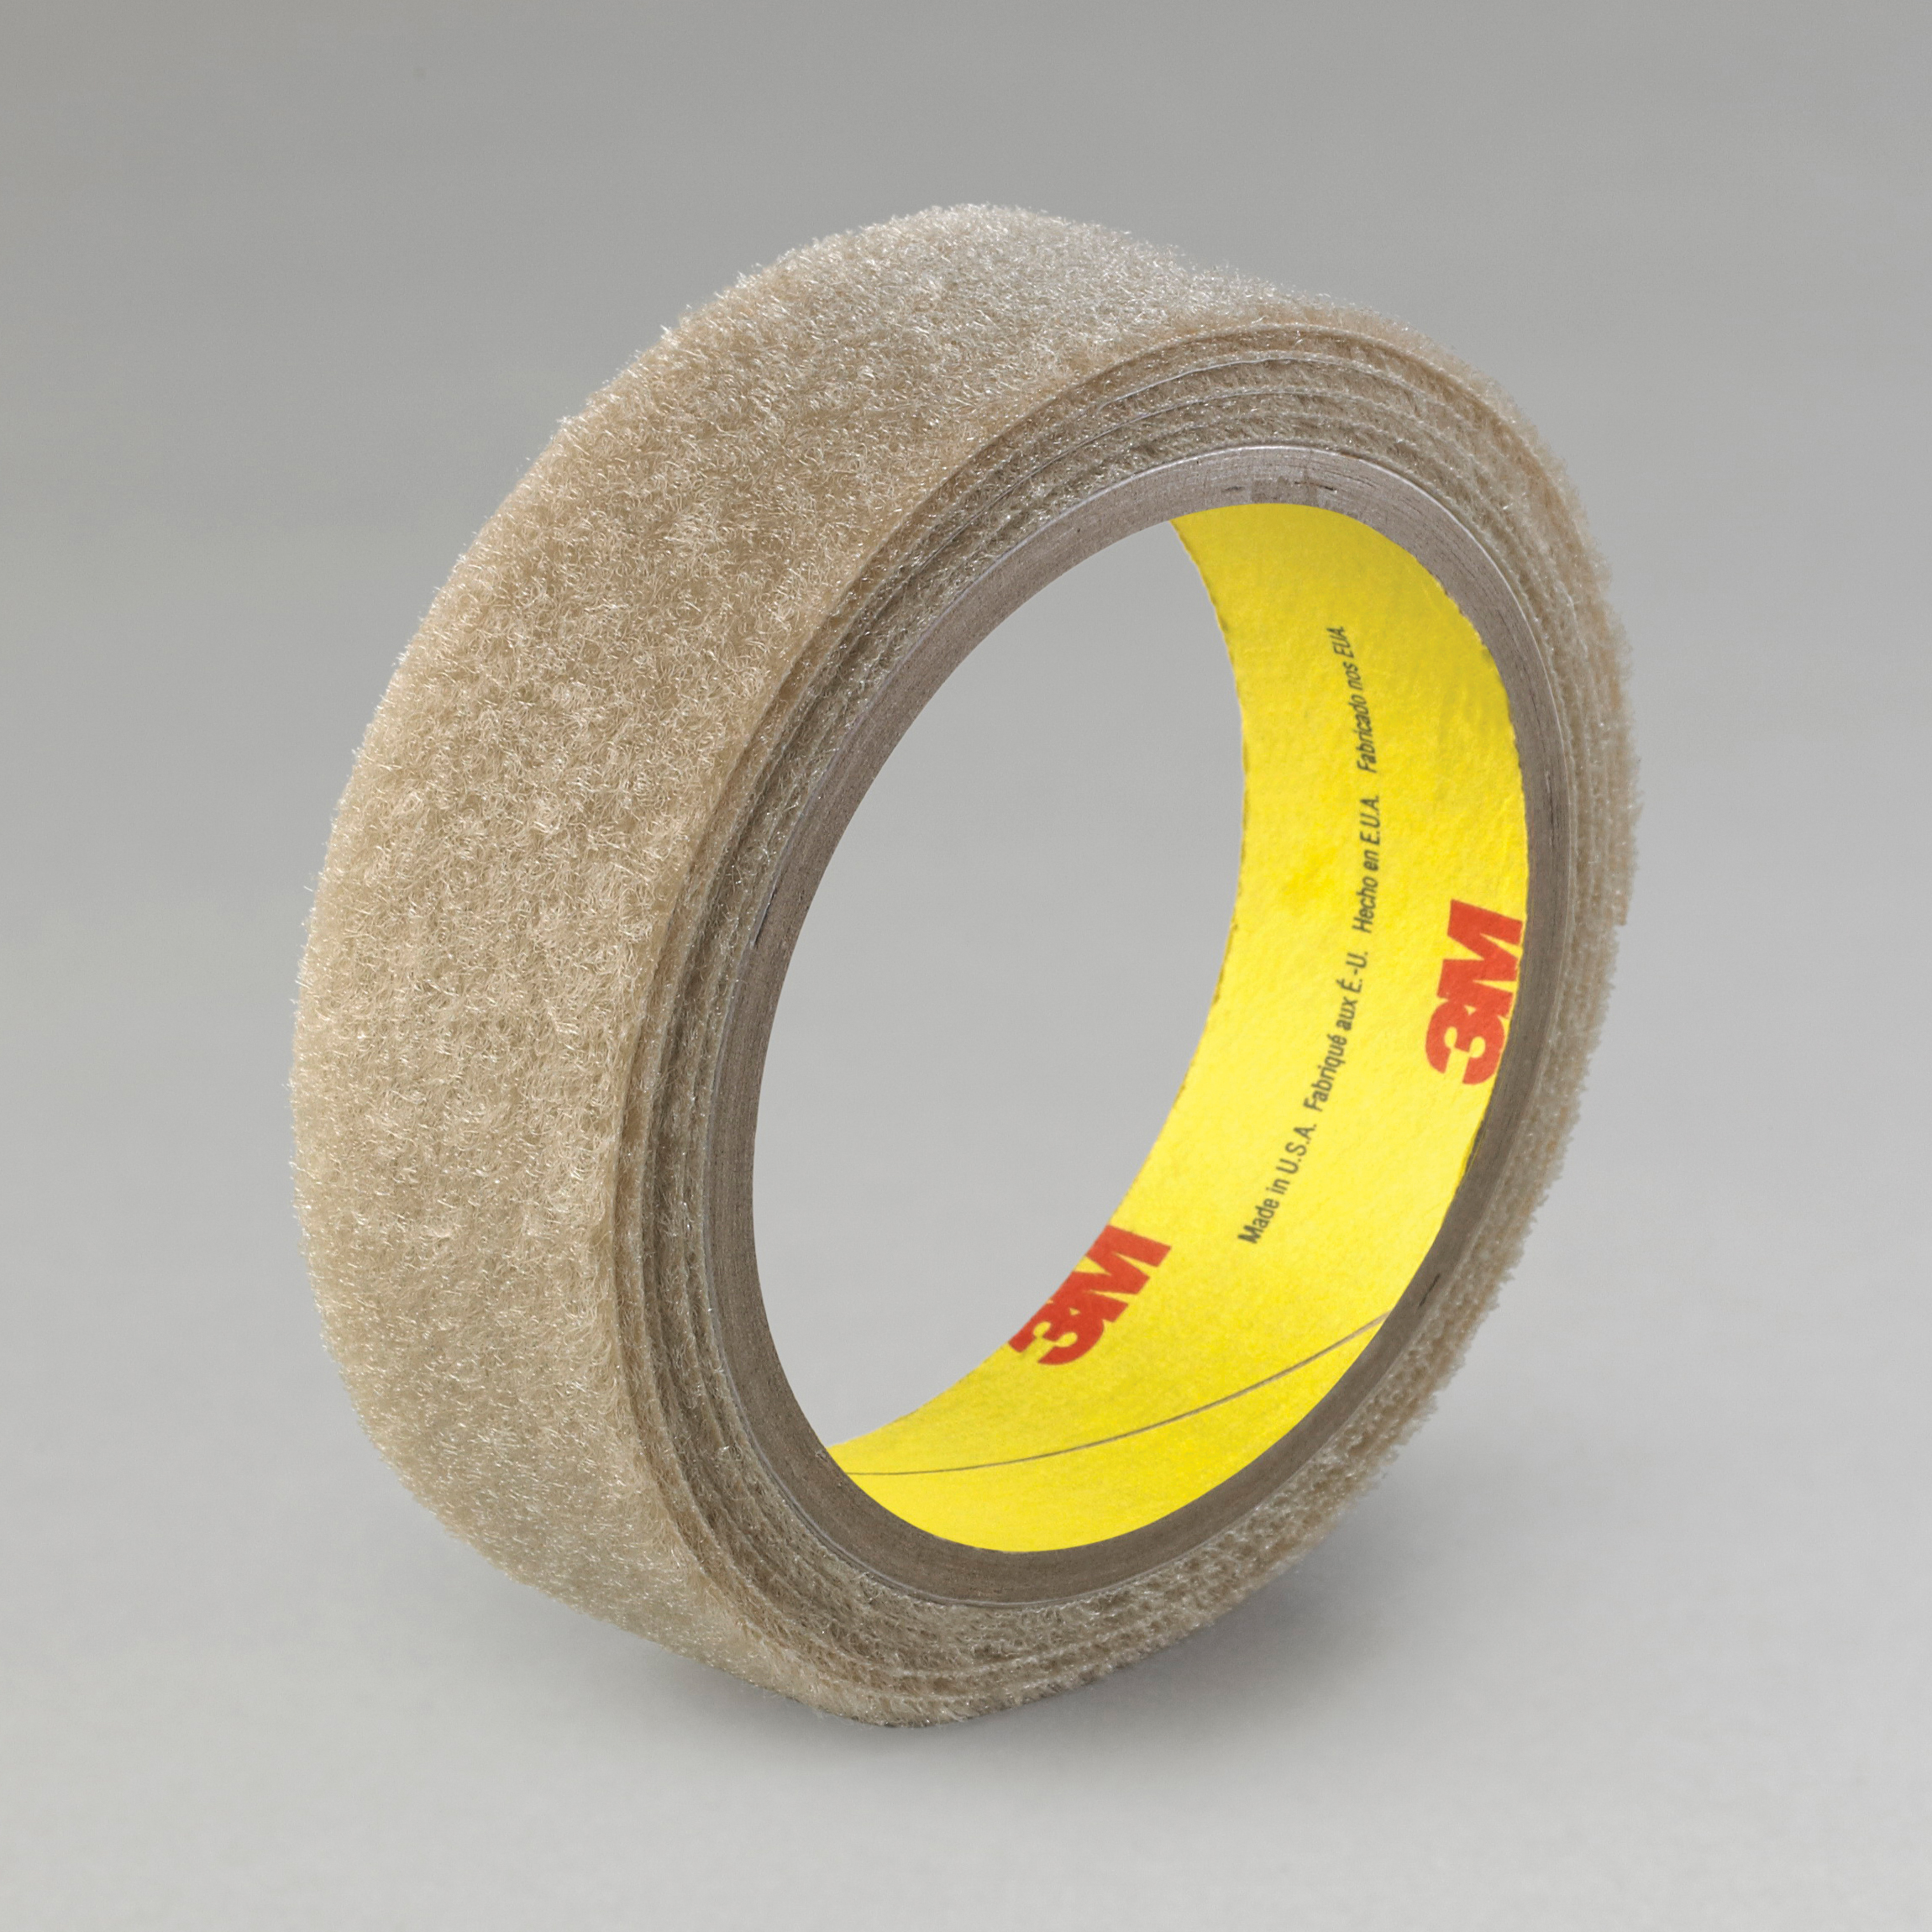 3M™ 021200-23198 Reclosable Loop Fastener Tape, 50 yd L x 3/4 in W, 0.15 in THK Engaged, Synthetic Rubber Adhesive, Woven Nylon Backing, Beige